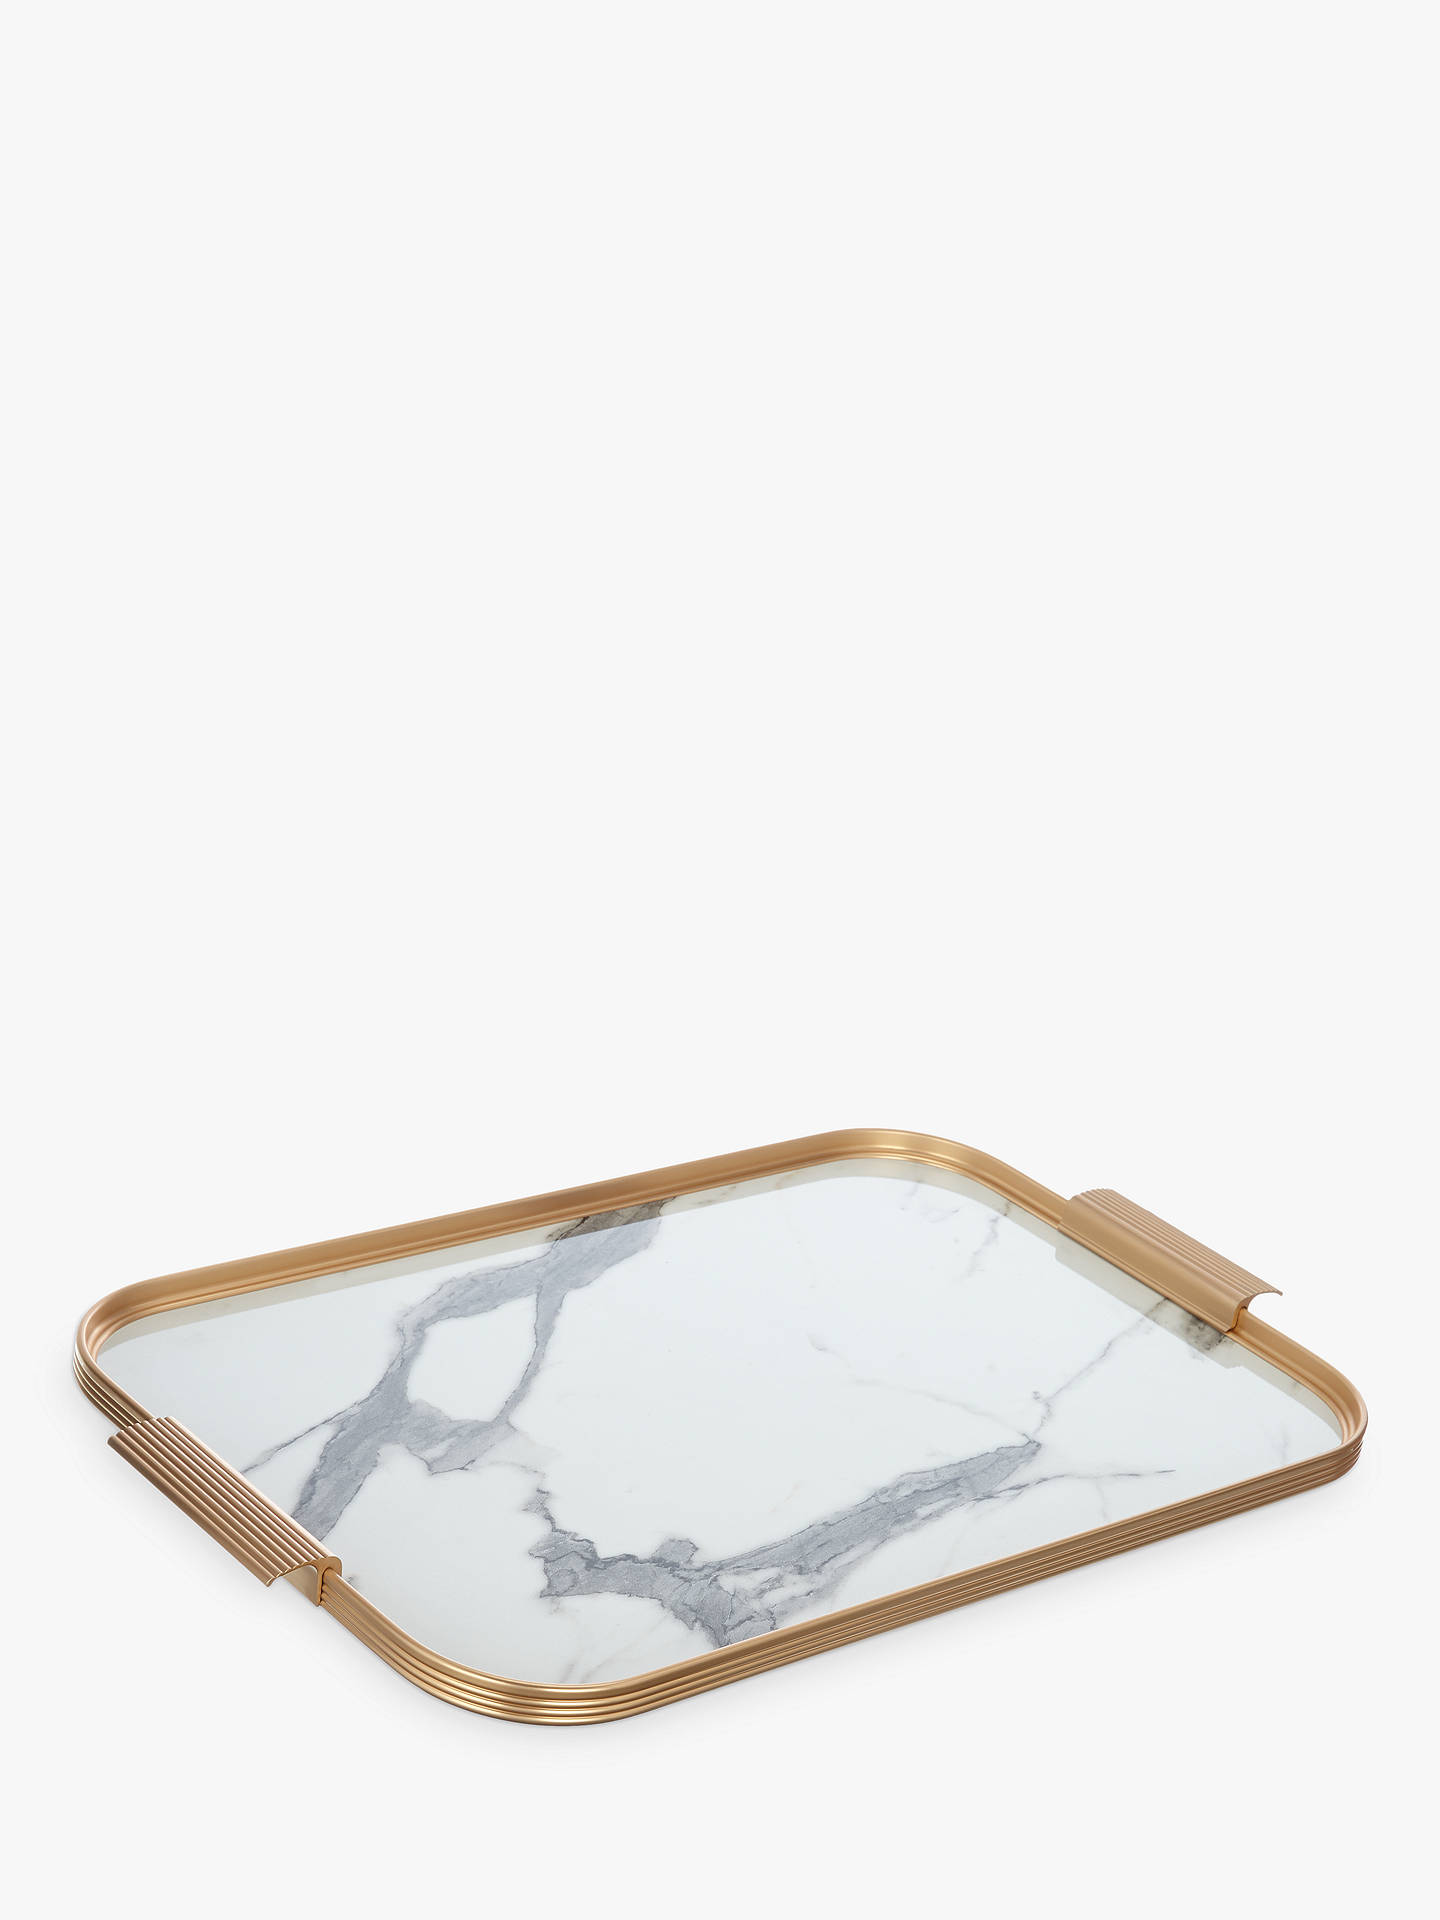 Buy Kaymet Ribbed 70th Anniversary Marble Effect Tray, Gold/White Online at johnlewis.com